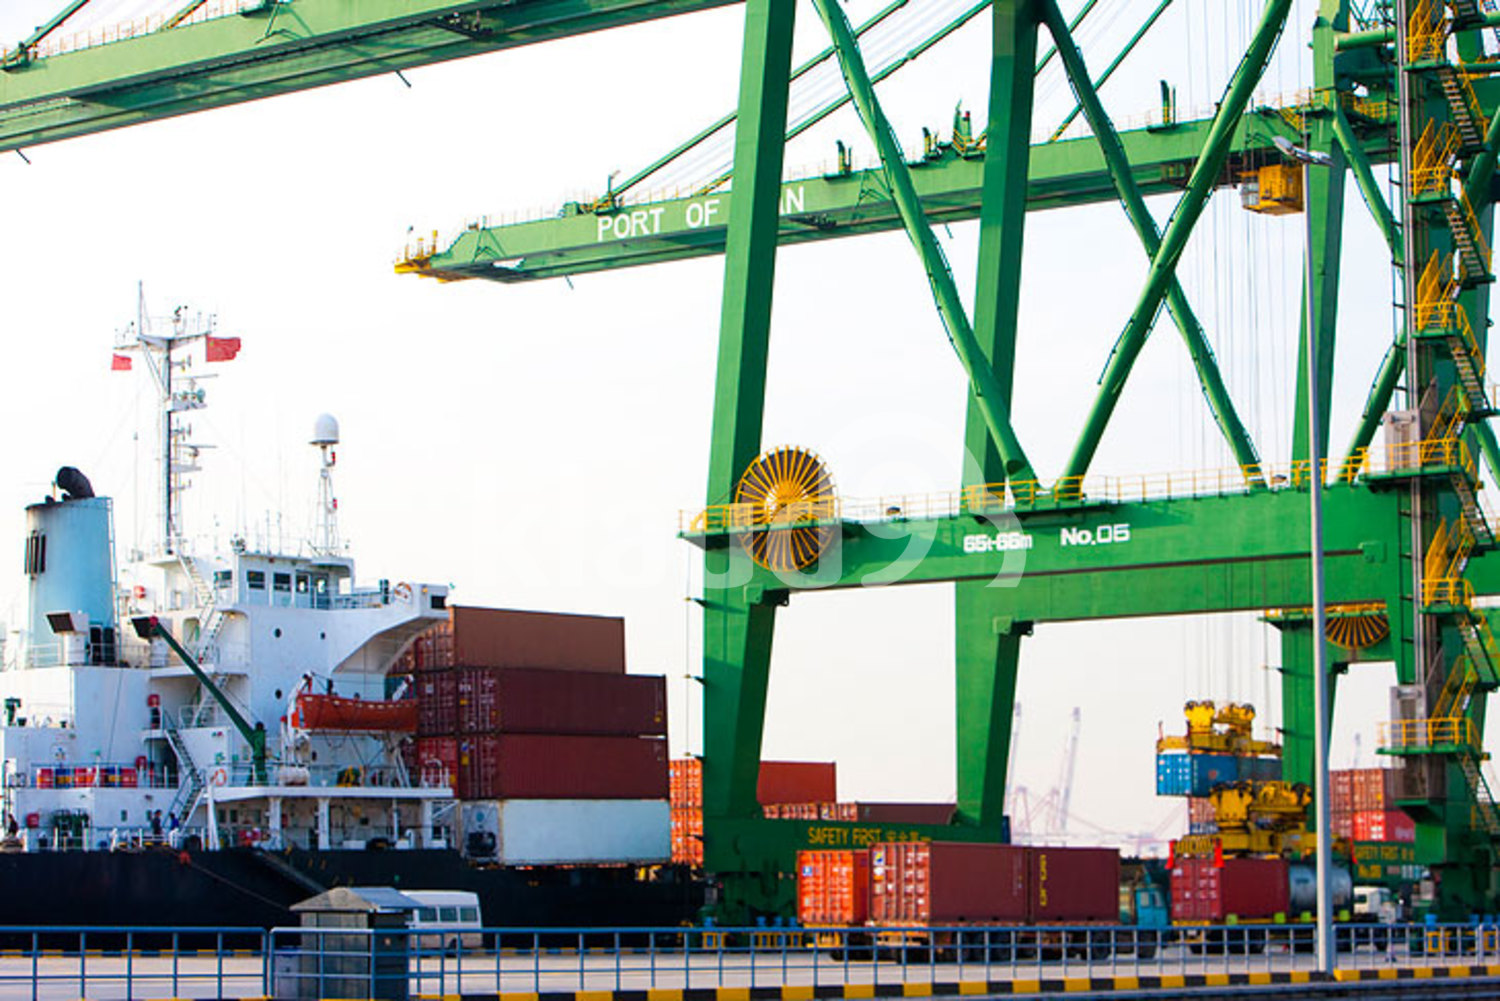 Cargo ship with cranes and cargo containers in shipping port